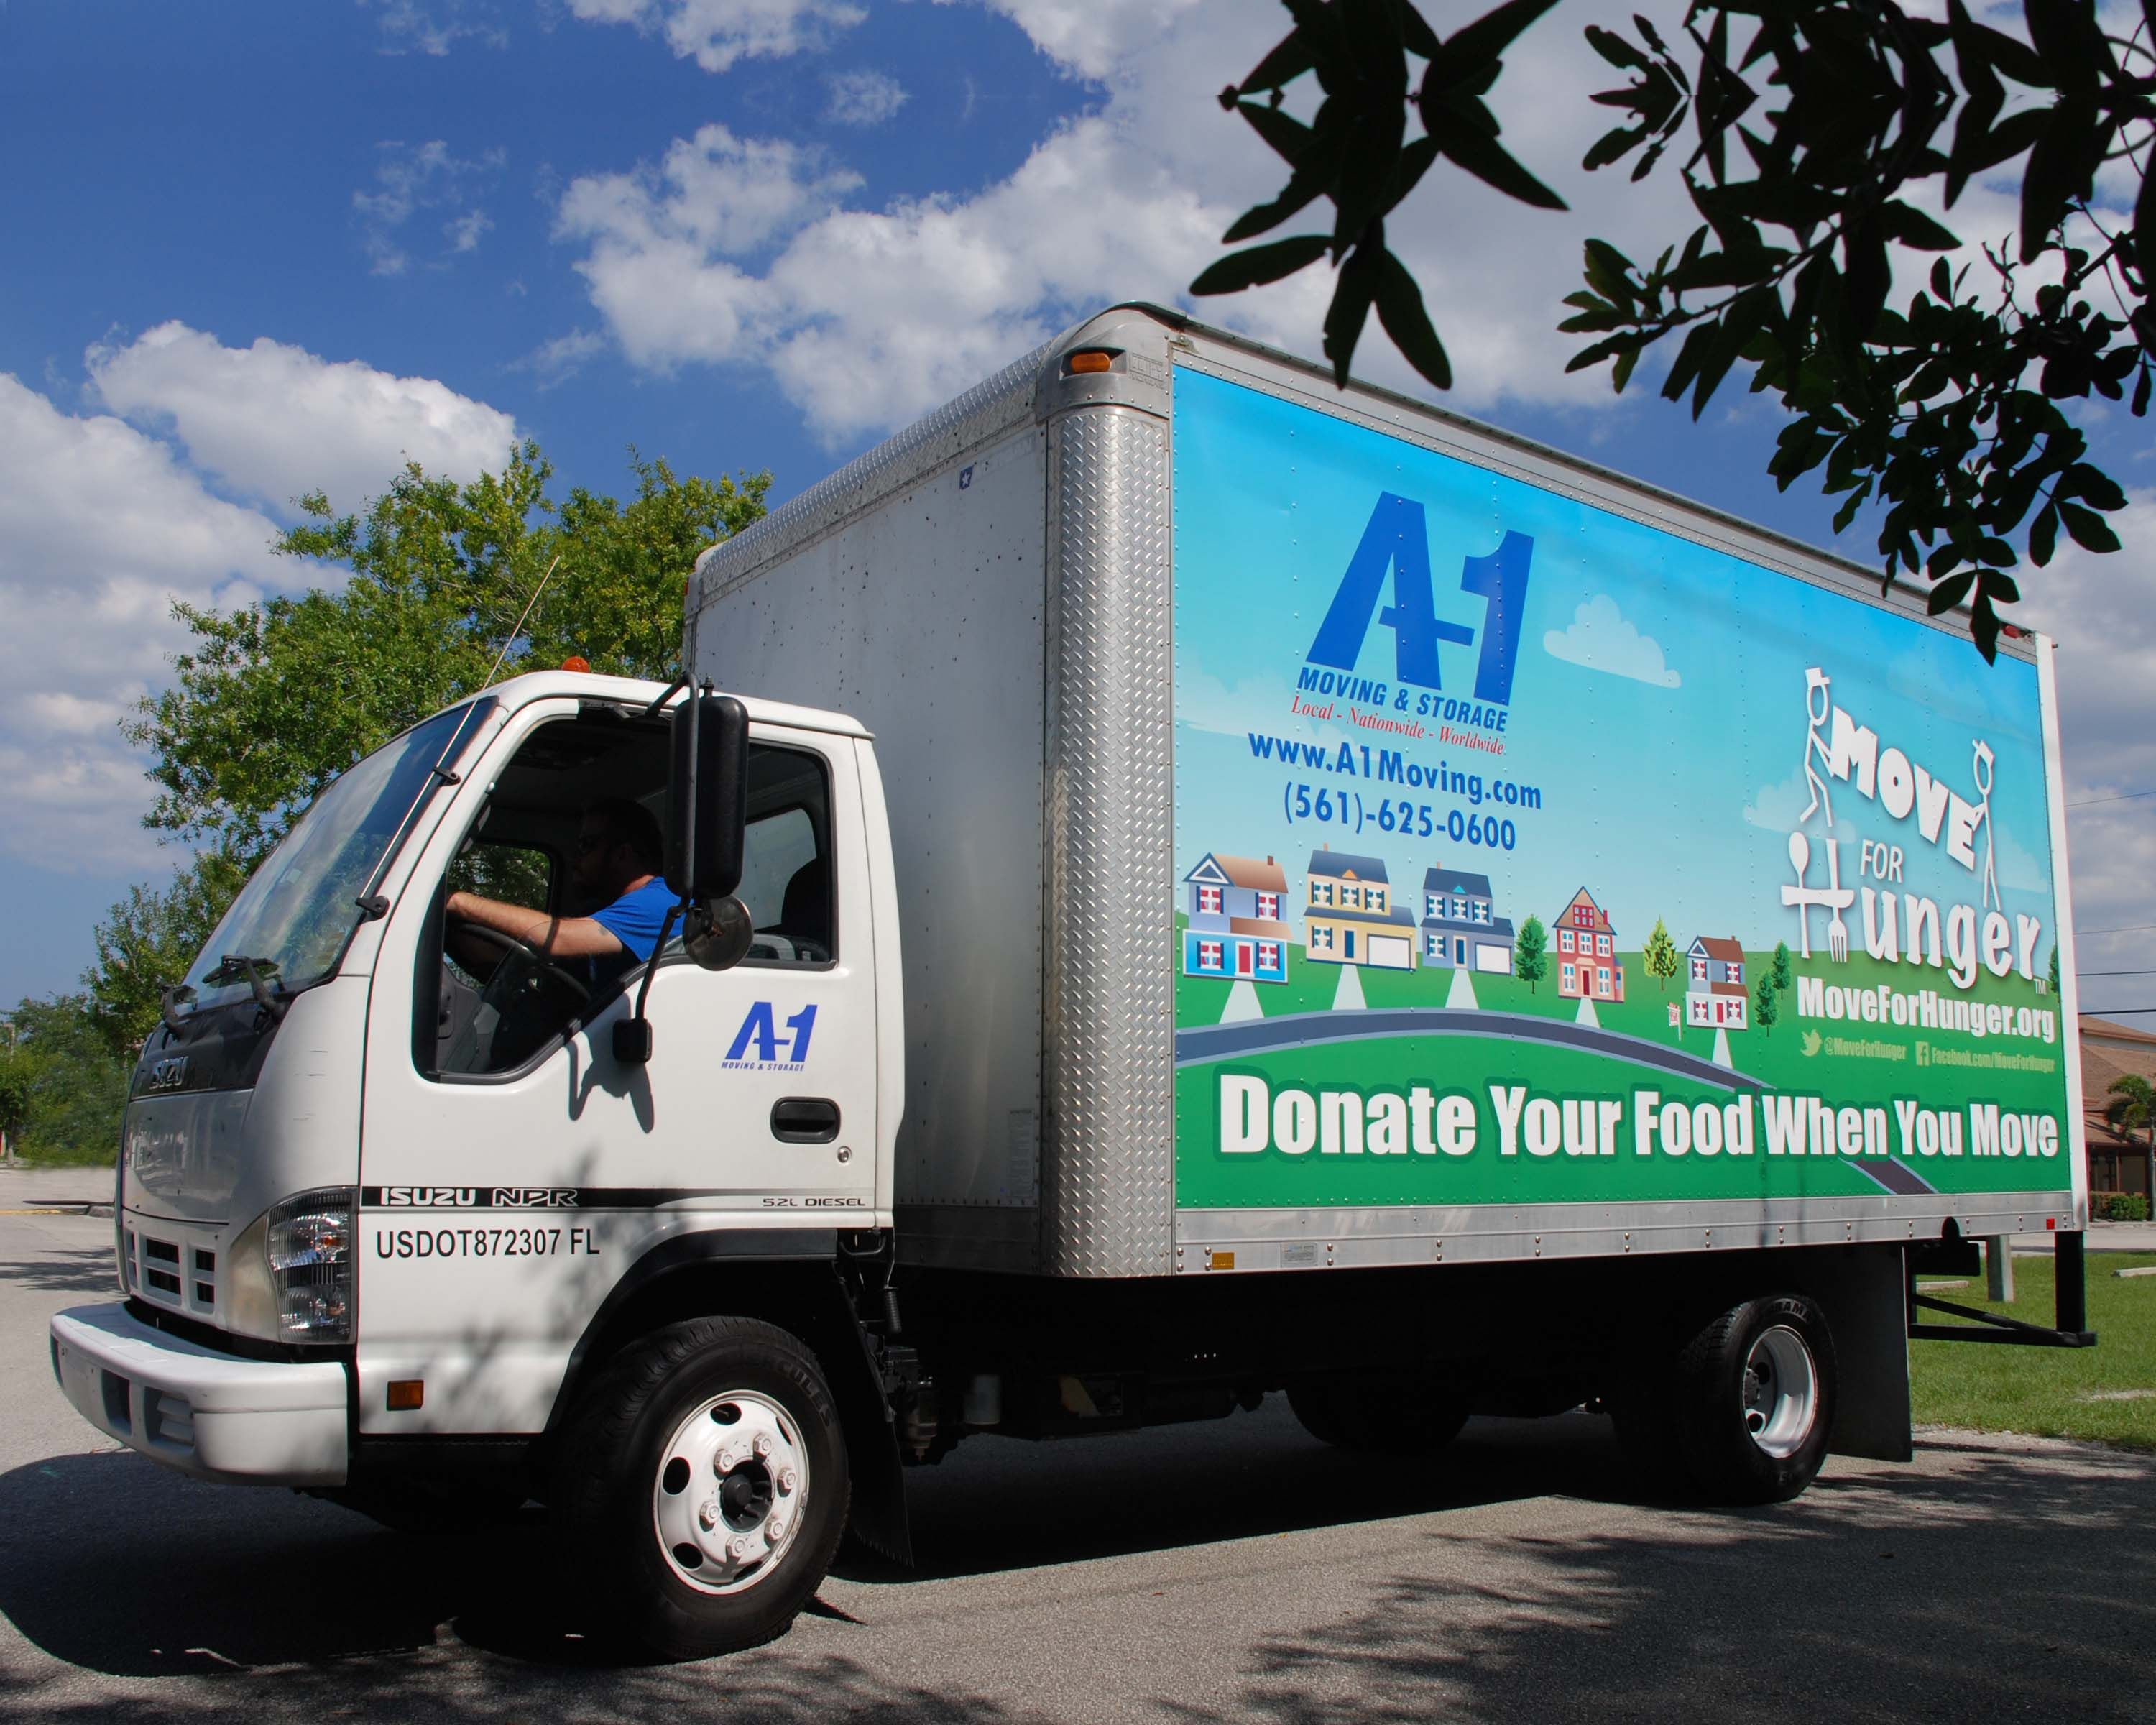 A 1 Moving And Storage Donated Transportation Help To